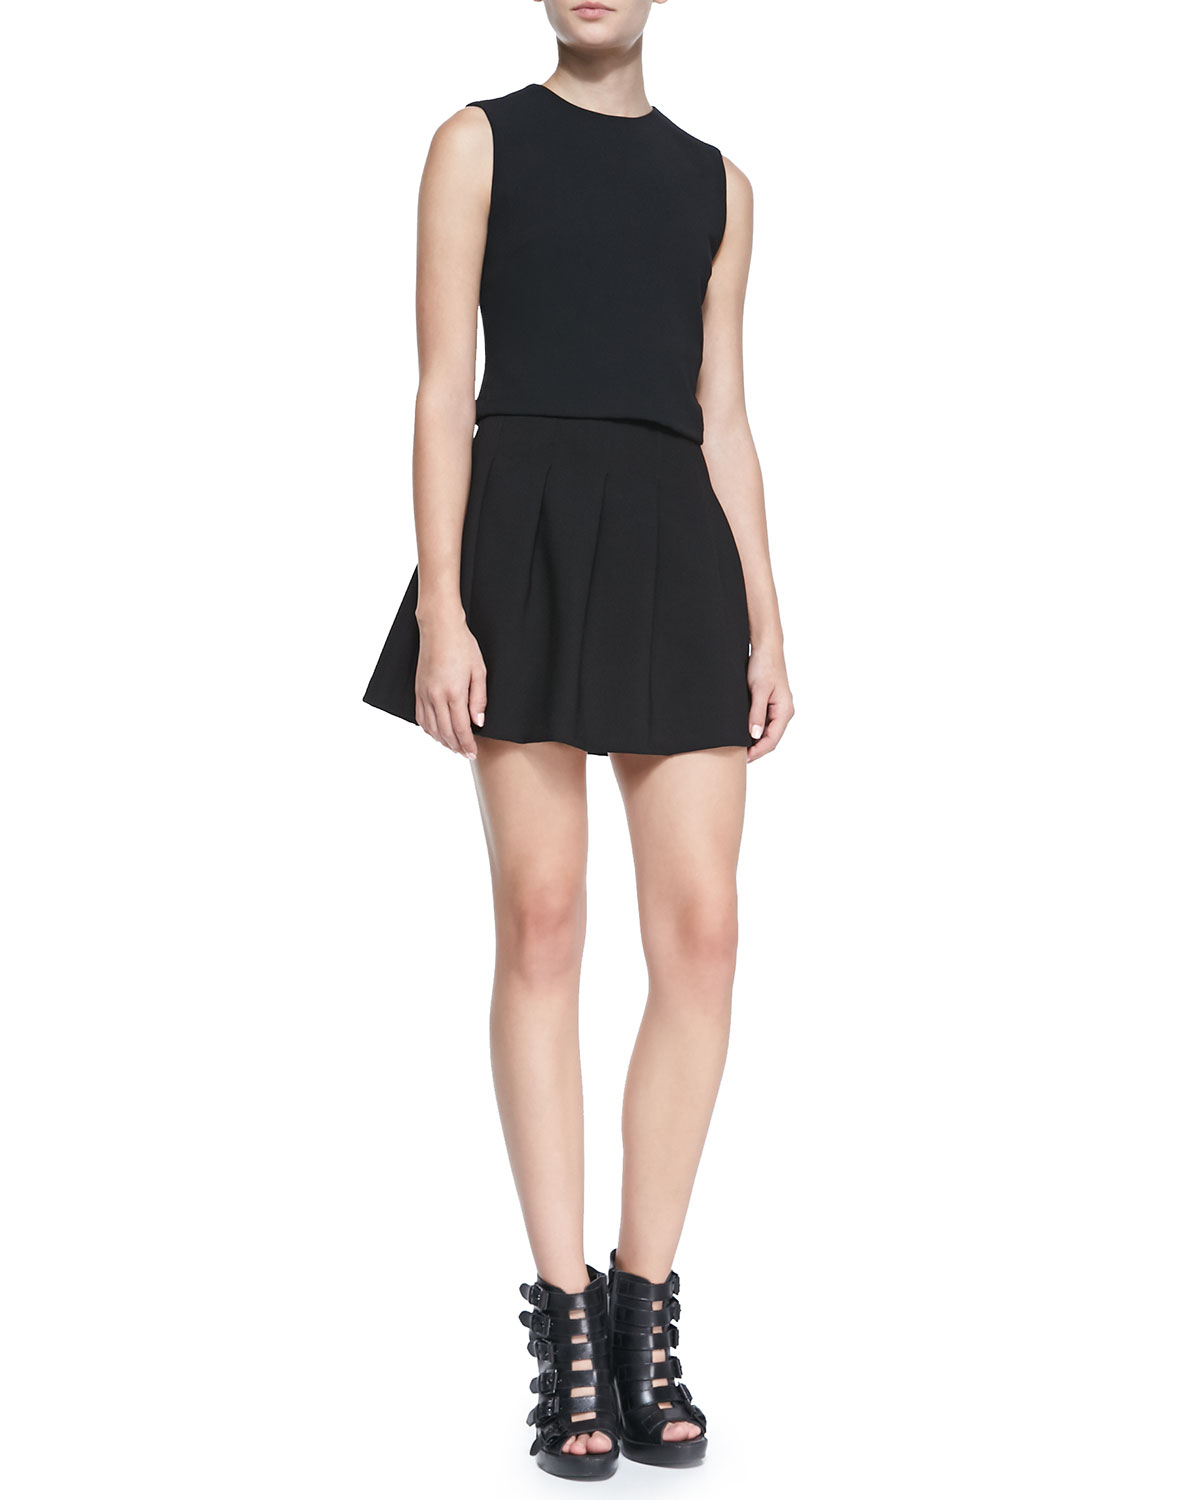 Alice   olivia Jersey High-Waist Fit-&-Flared Skirt in Black | Lyst